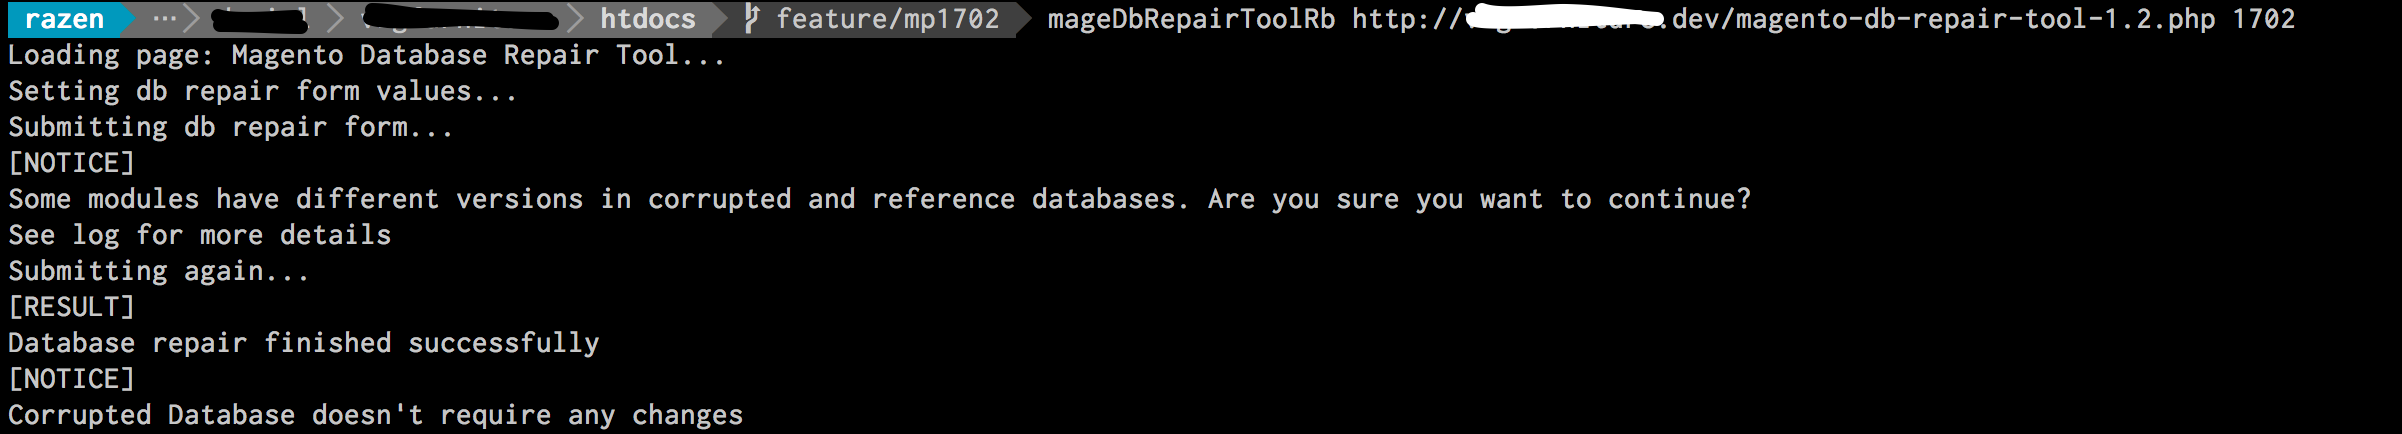 Ruby DB Repair Tool Console Output